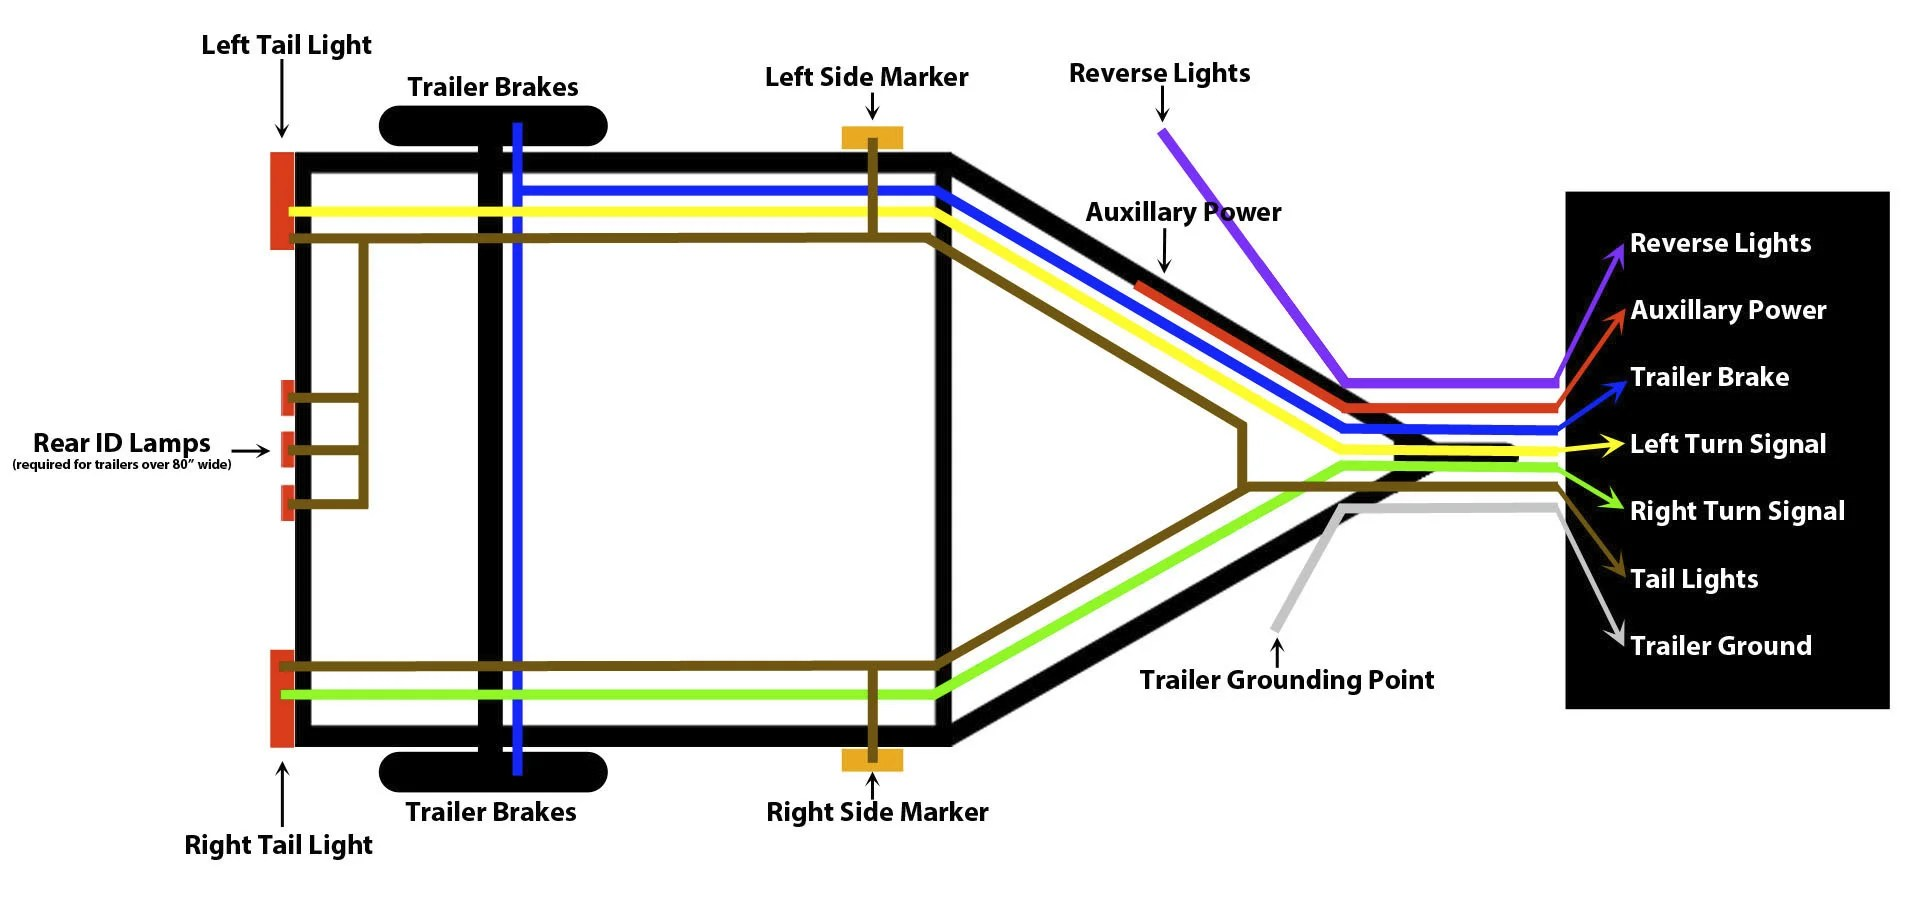 Car dolly wiring diagram wiring database tow dolly light wiring wiring library u2022 piaa wiring diagram car dolly wiring diagram cheapraybanclubmaster Choice Image